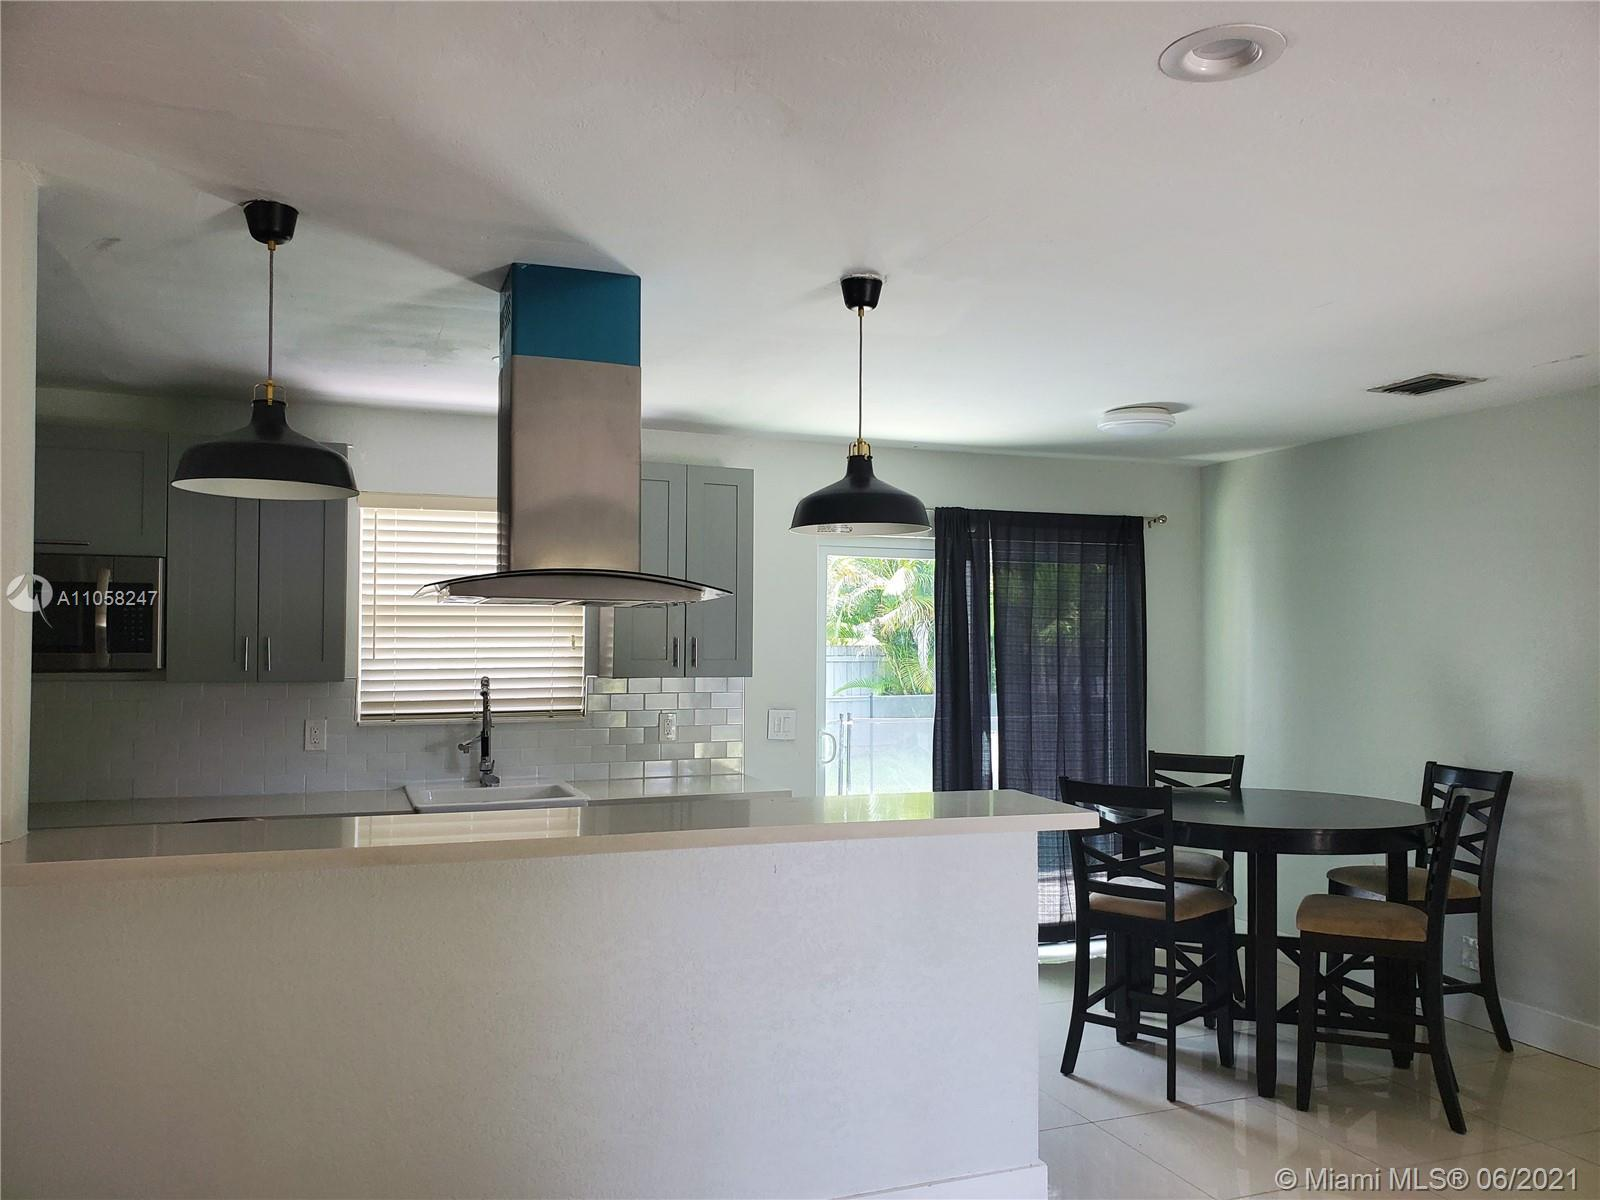 Bring your clients to see this beautiful house, 3 bedrooms 2 bathrooms, with pool and beautiful pati